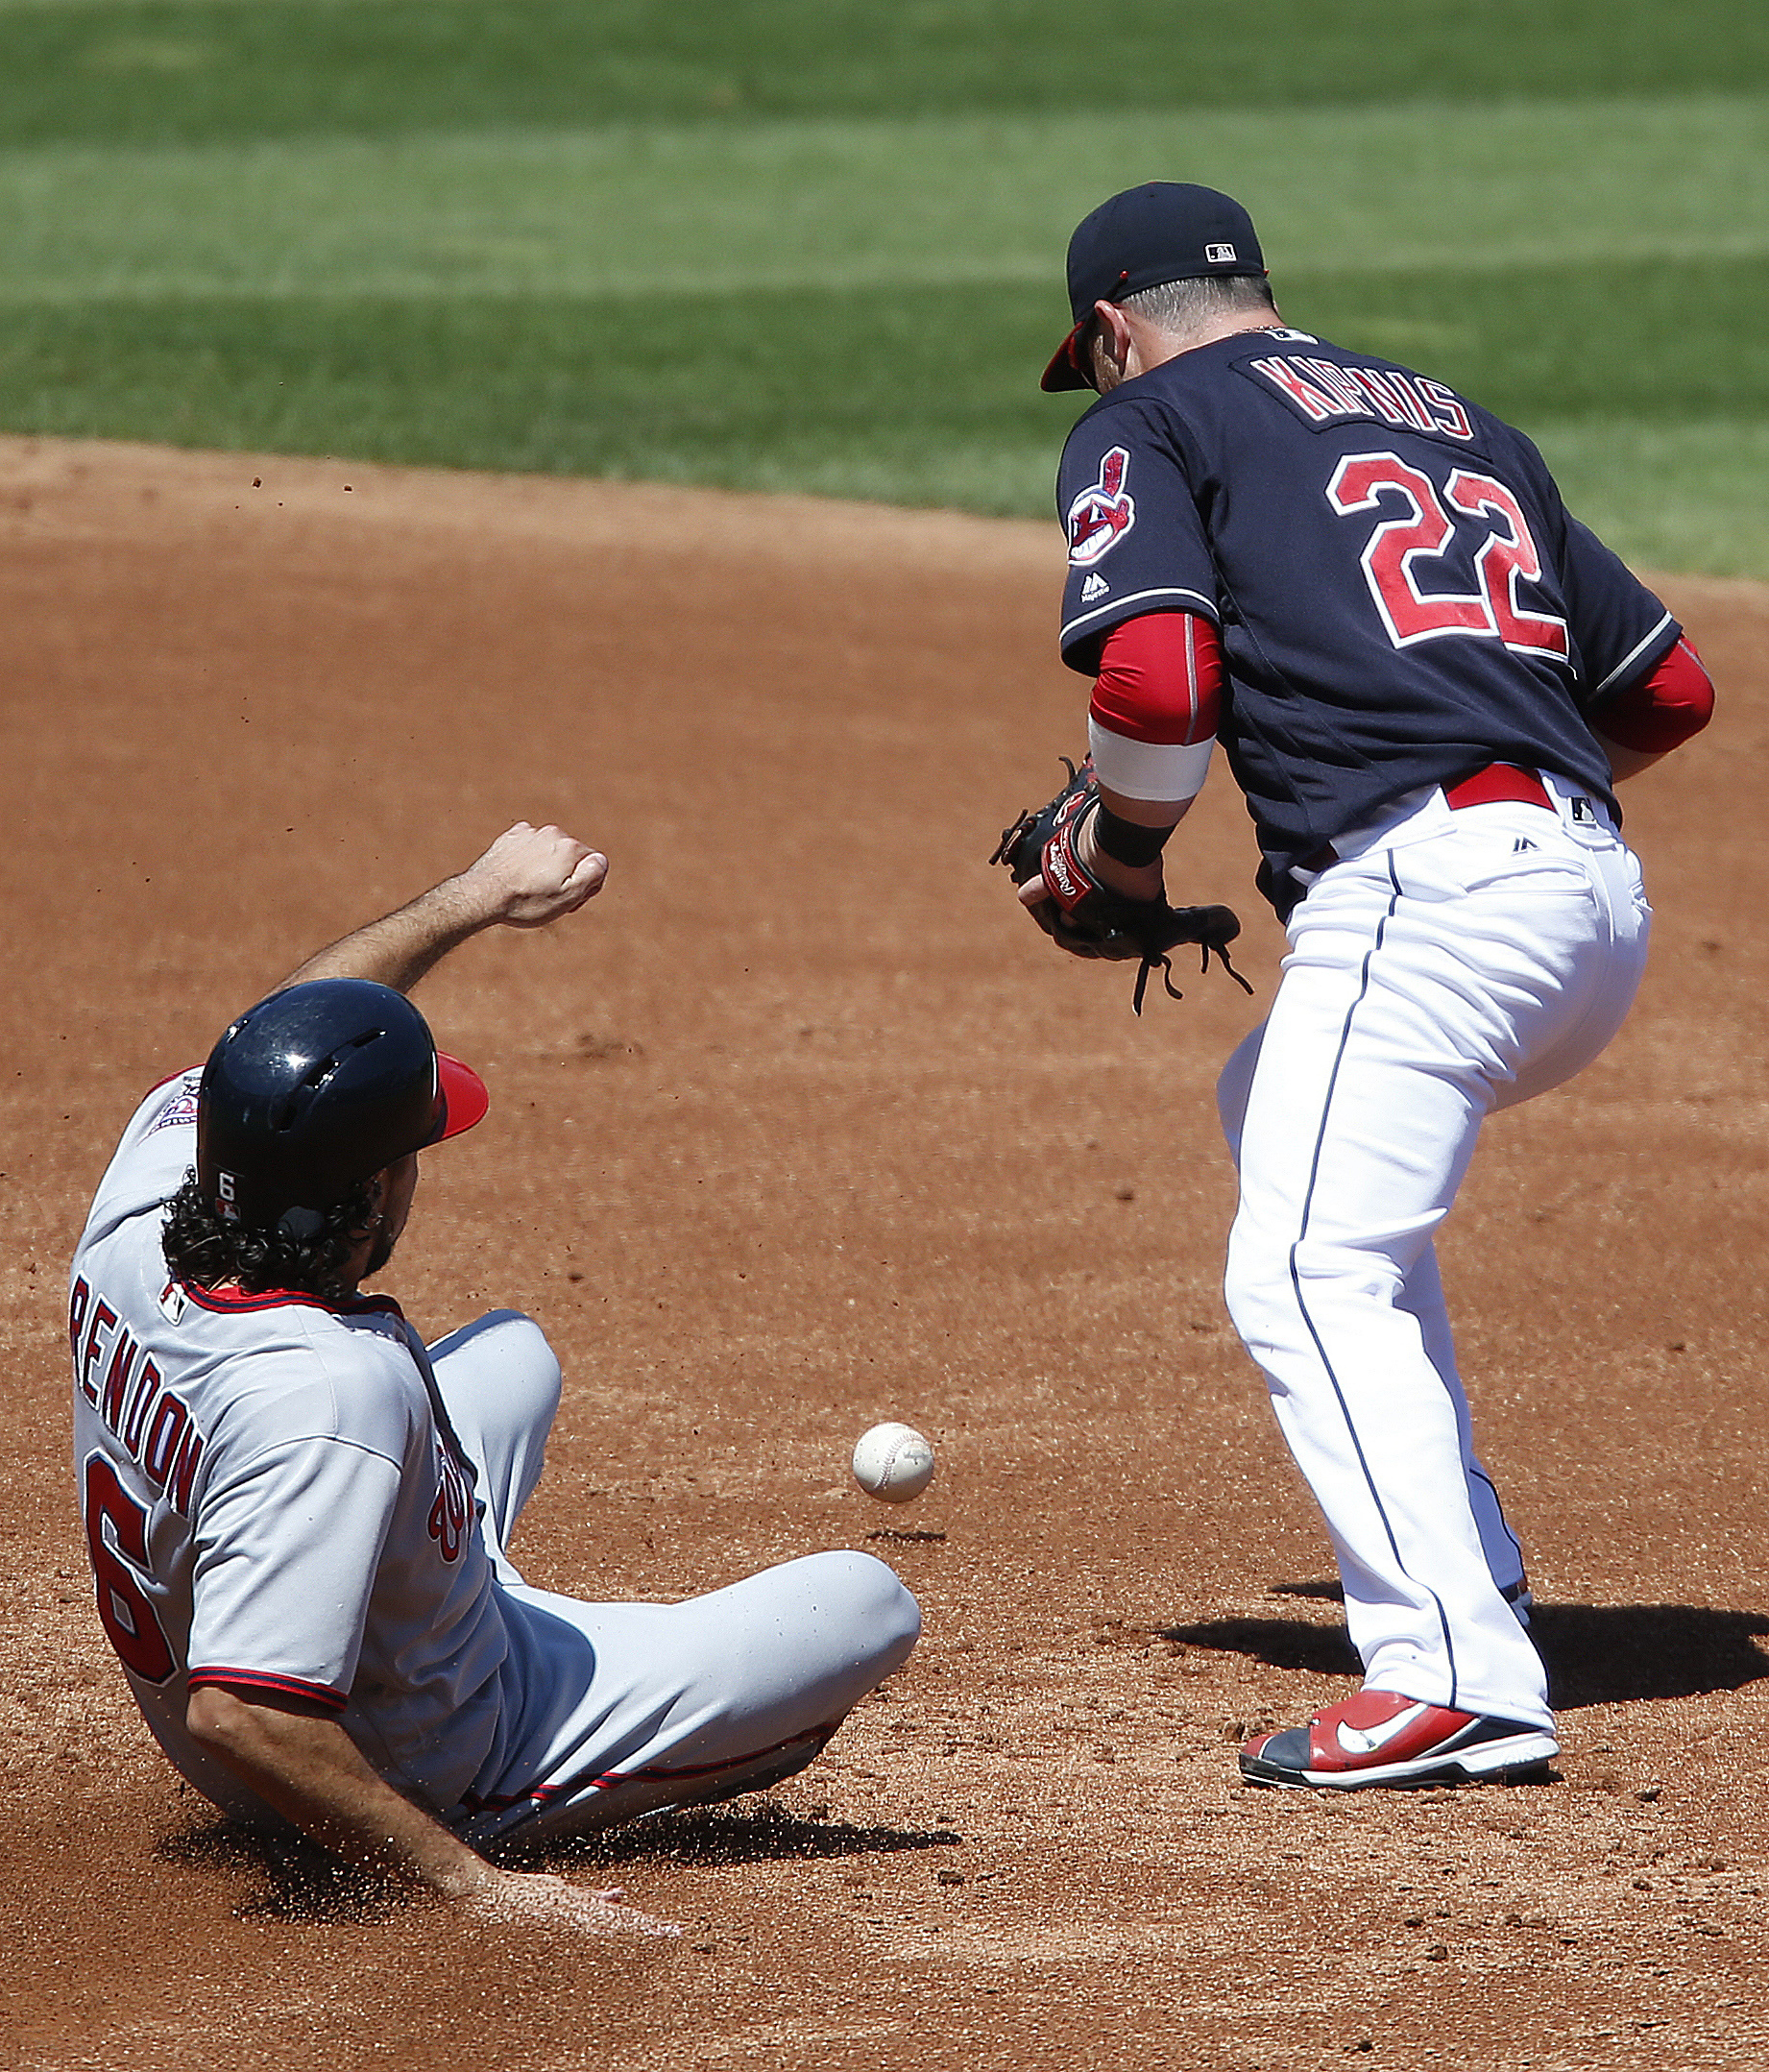 Cleveland Indians' Jason Kipnis (22) bobbles the exchange after forcing out Washington Nationals' Anthony Rendon (6) at second base, preventing him from turning the double play during the first inning of a baseball game Wednesday, July 27, 2016, in Clevel